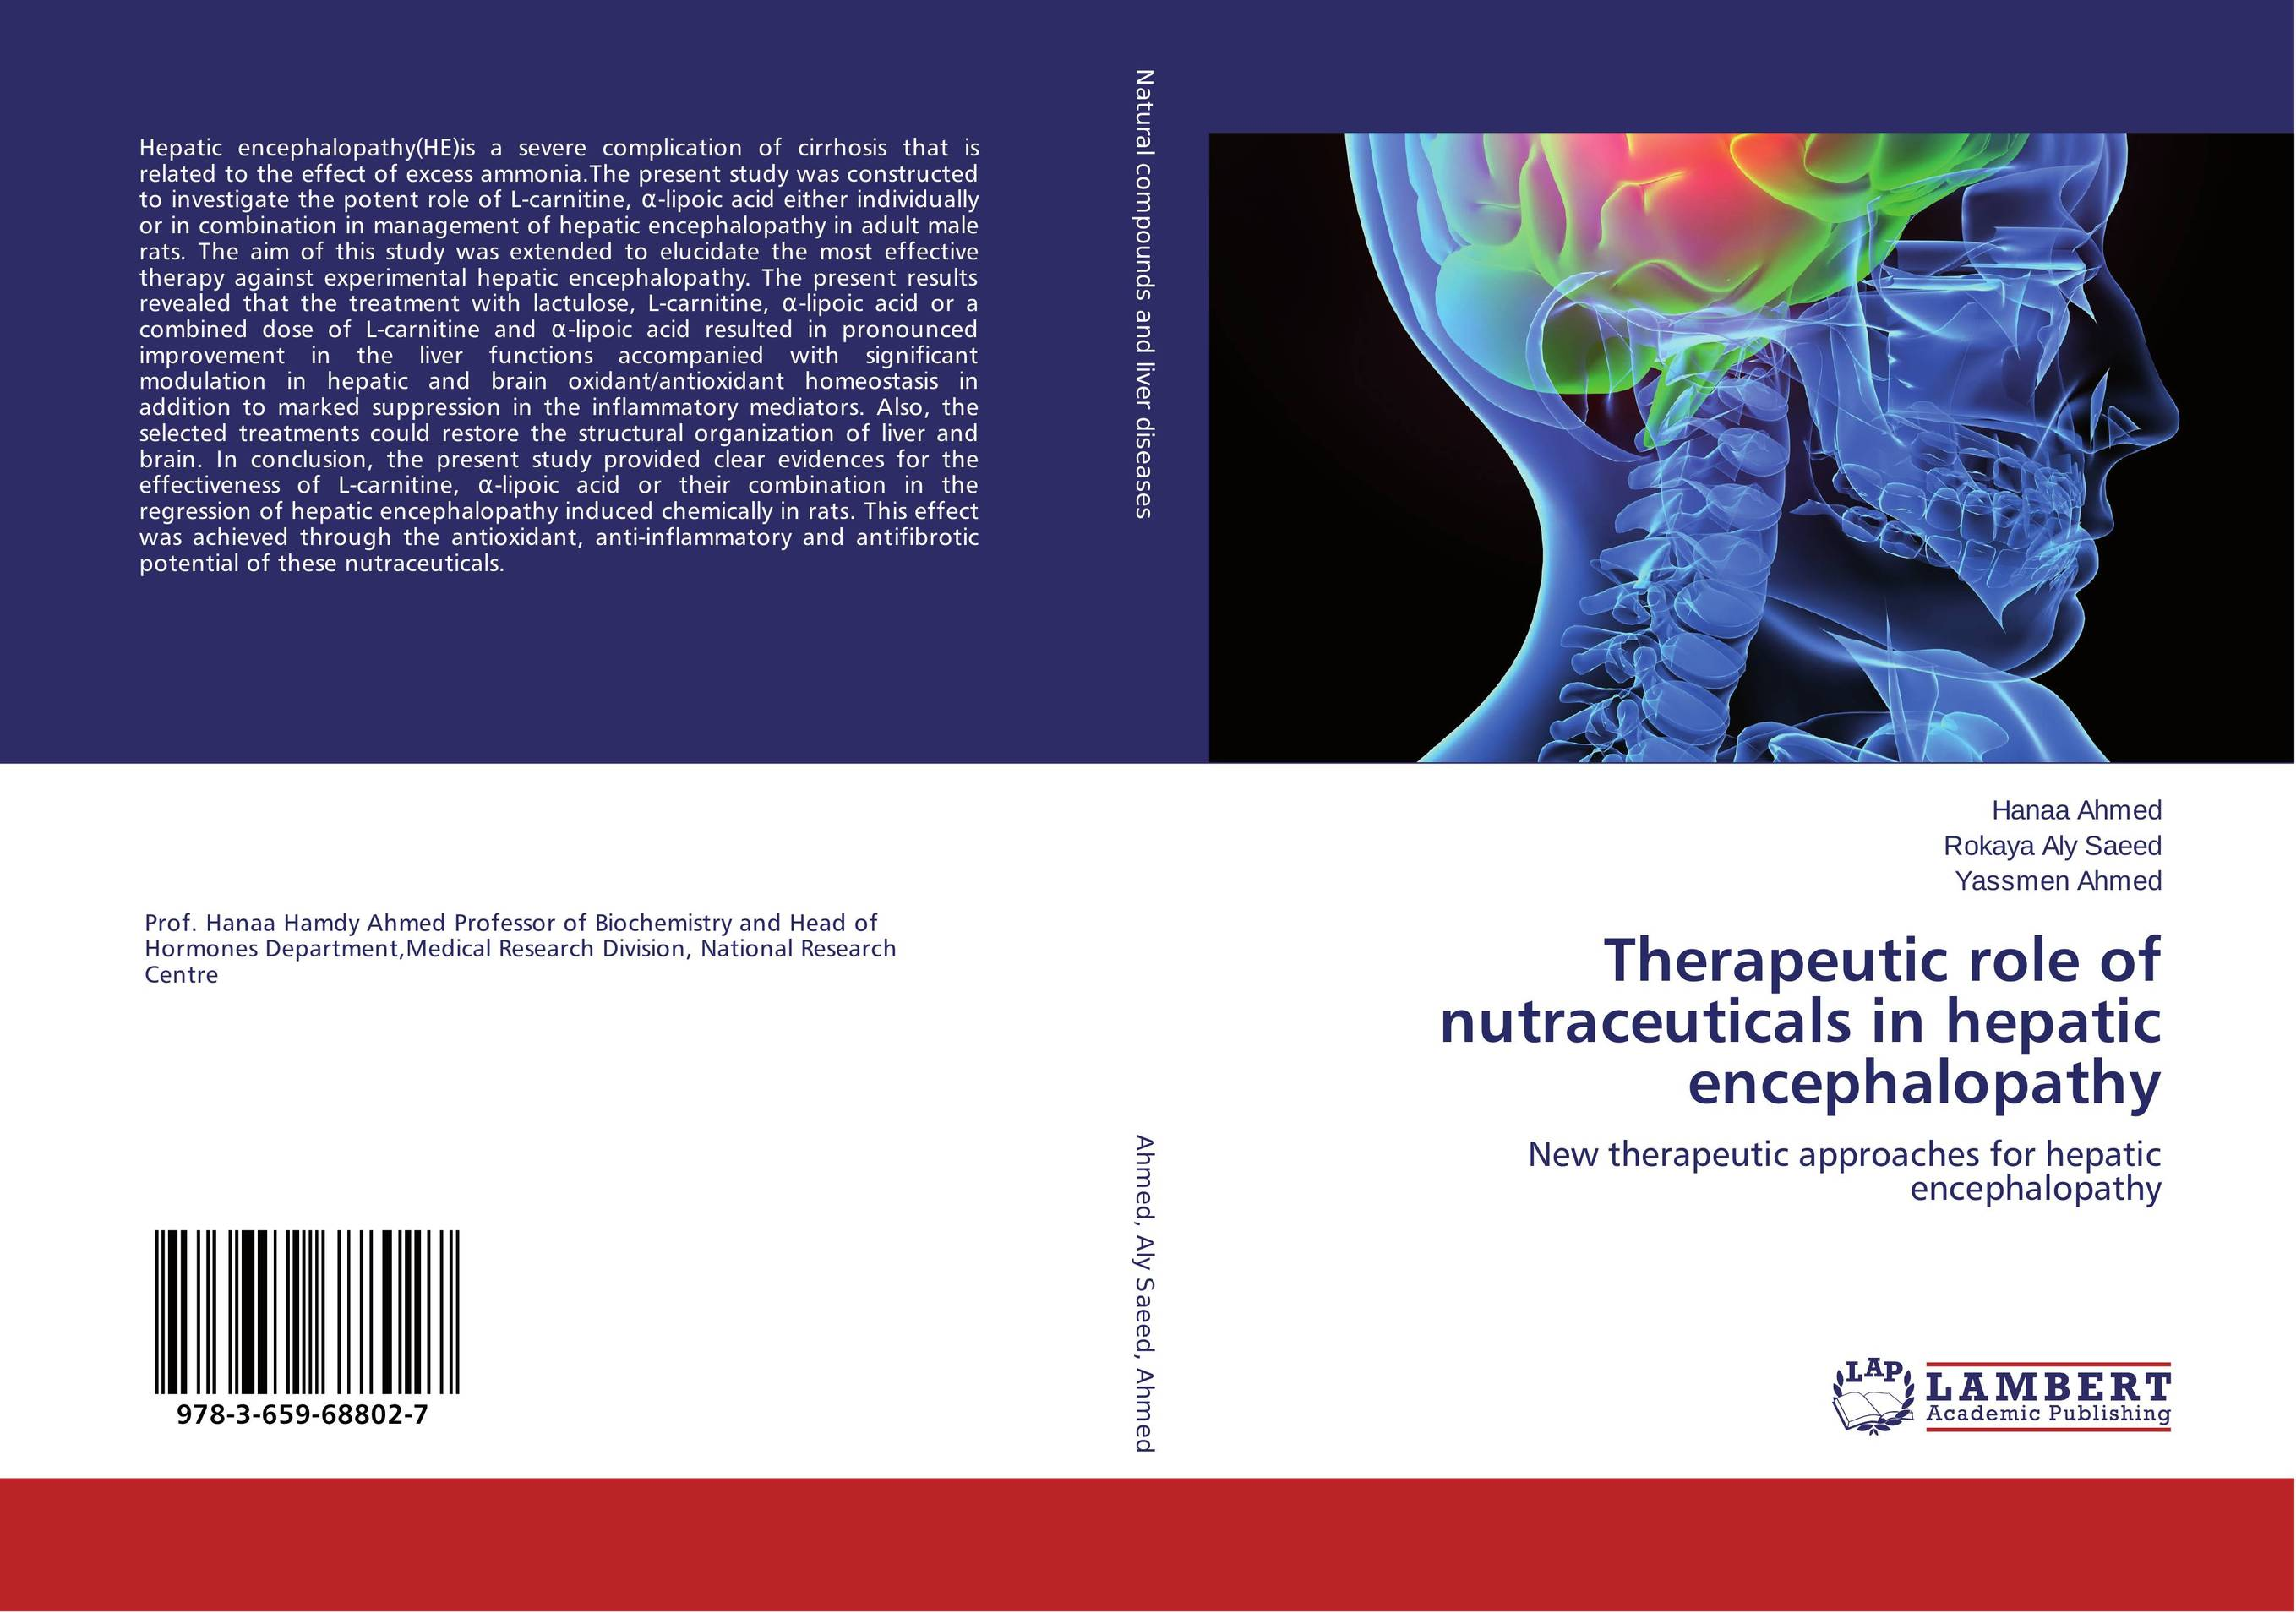 Therapeutic role of nutraceuticals in hepatic encephalopathy shahrzad dehghan kourosh akef and sholeh kolahi the role of brain dominance in translation quality